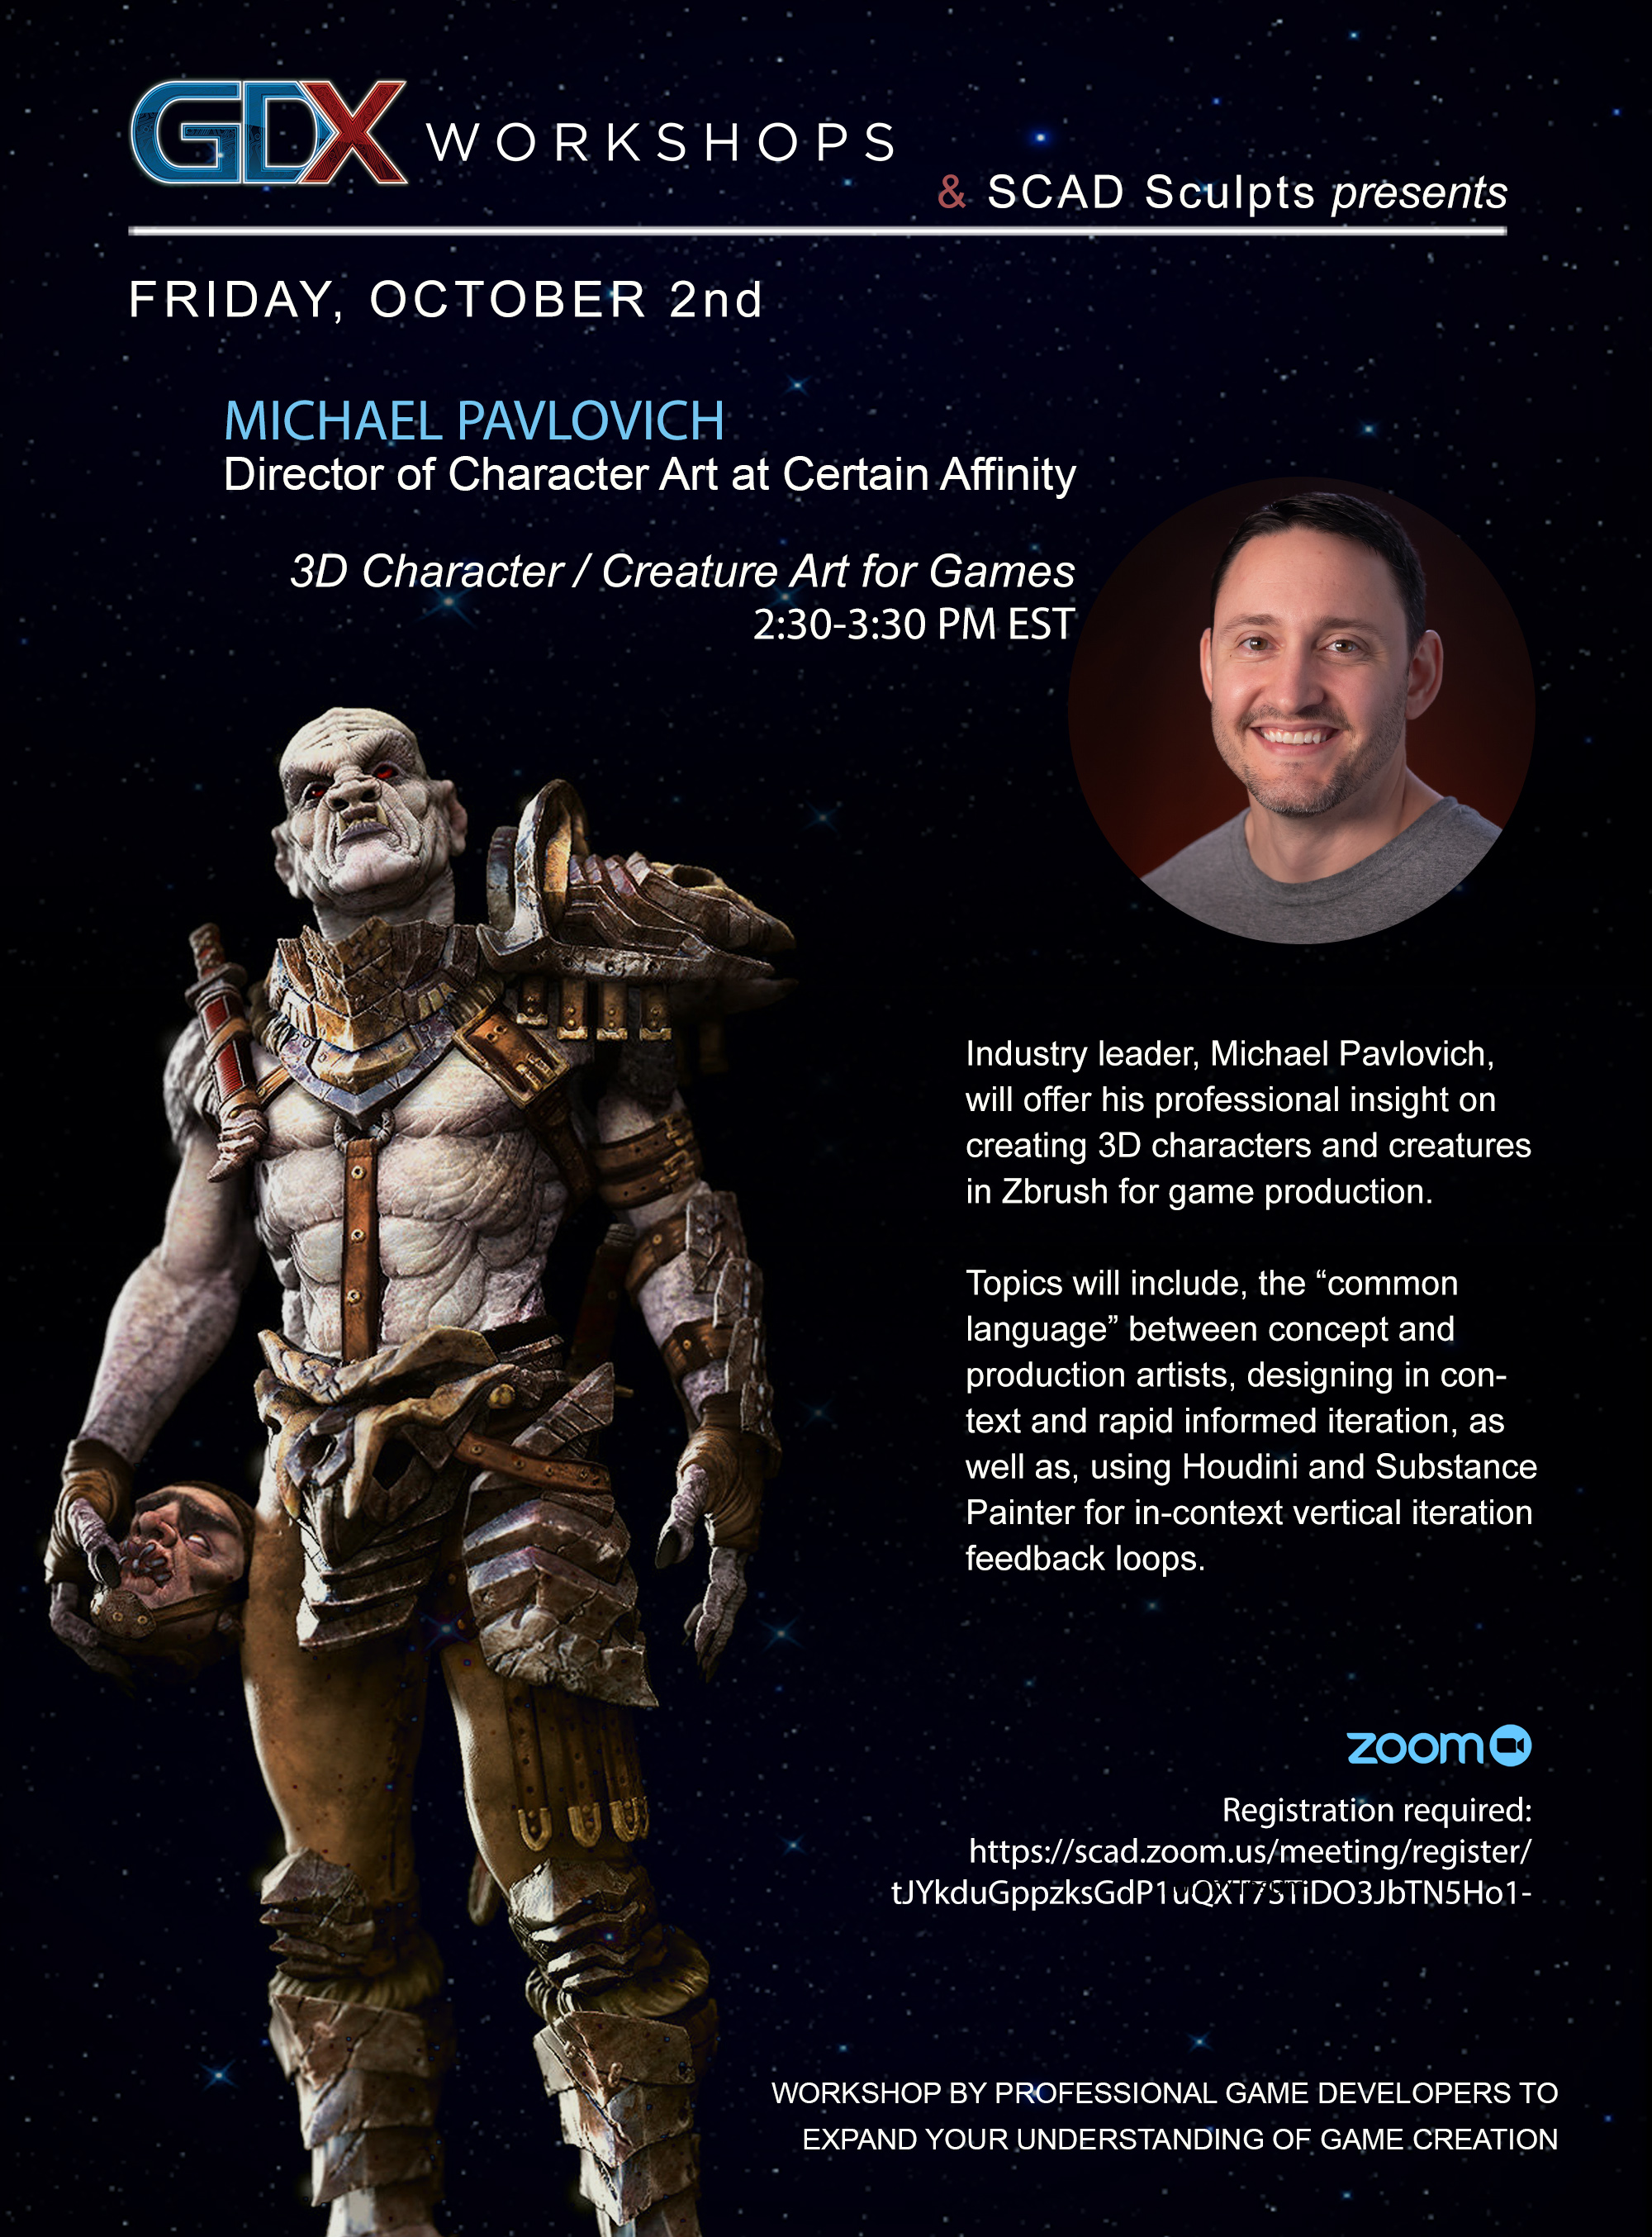 GDX Workshops & SCAD Sculpts presents – Michael Pavlovich